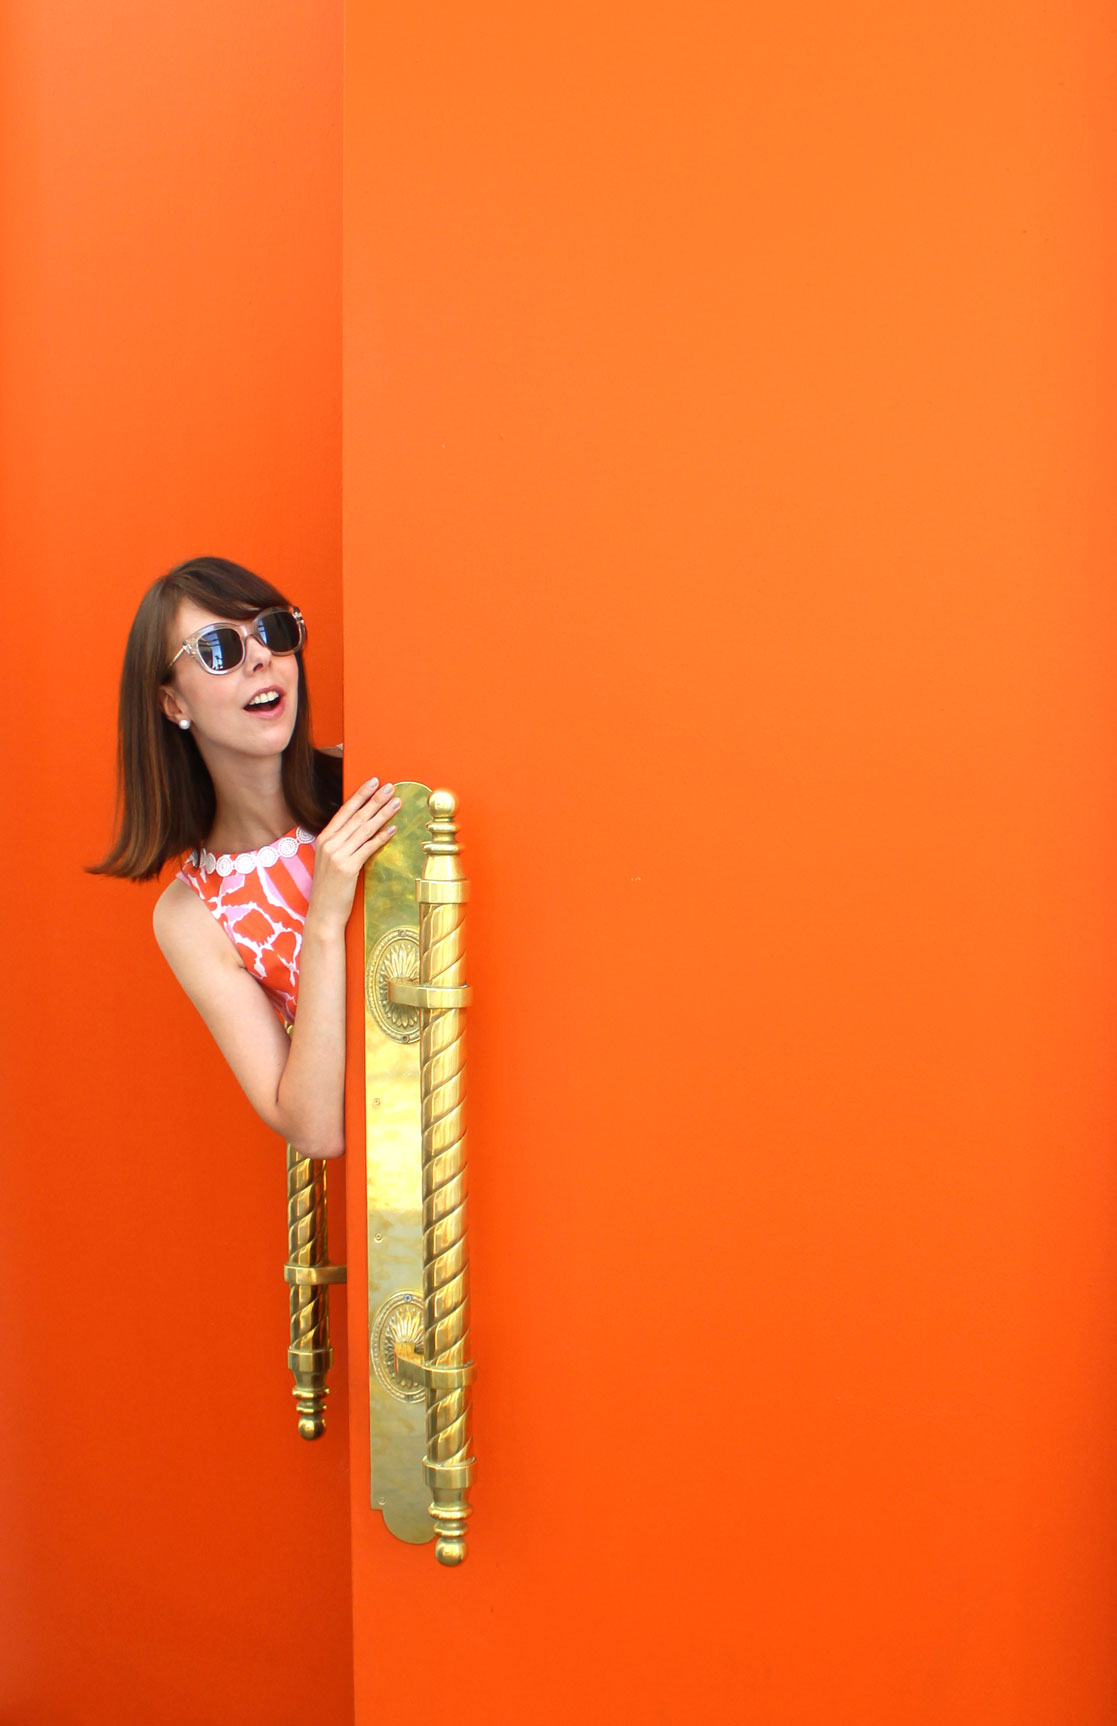 Orange you glad? Wearing the loveliest Lilly for Target giraffe print shift dress.